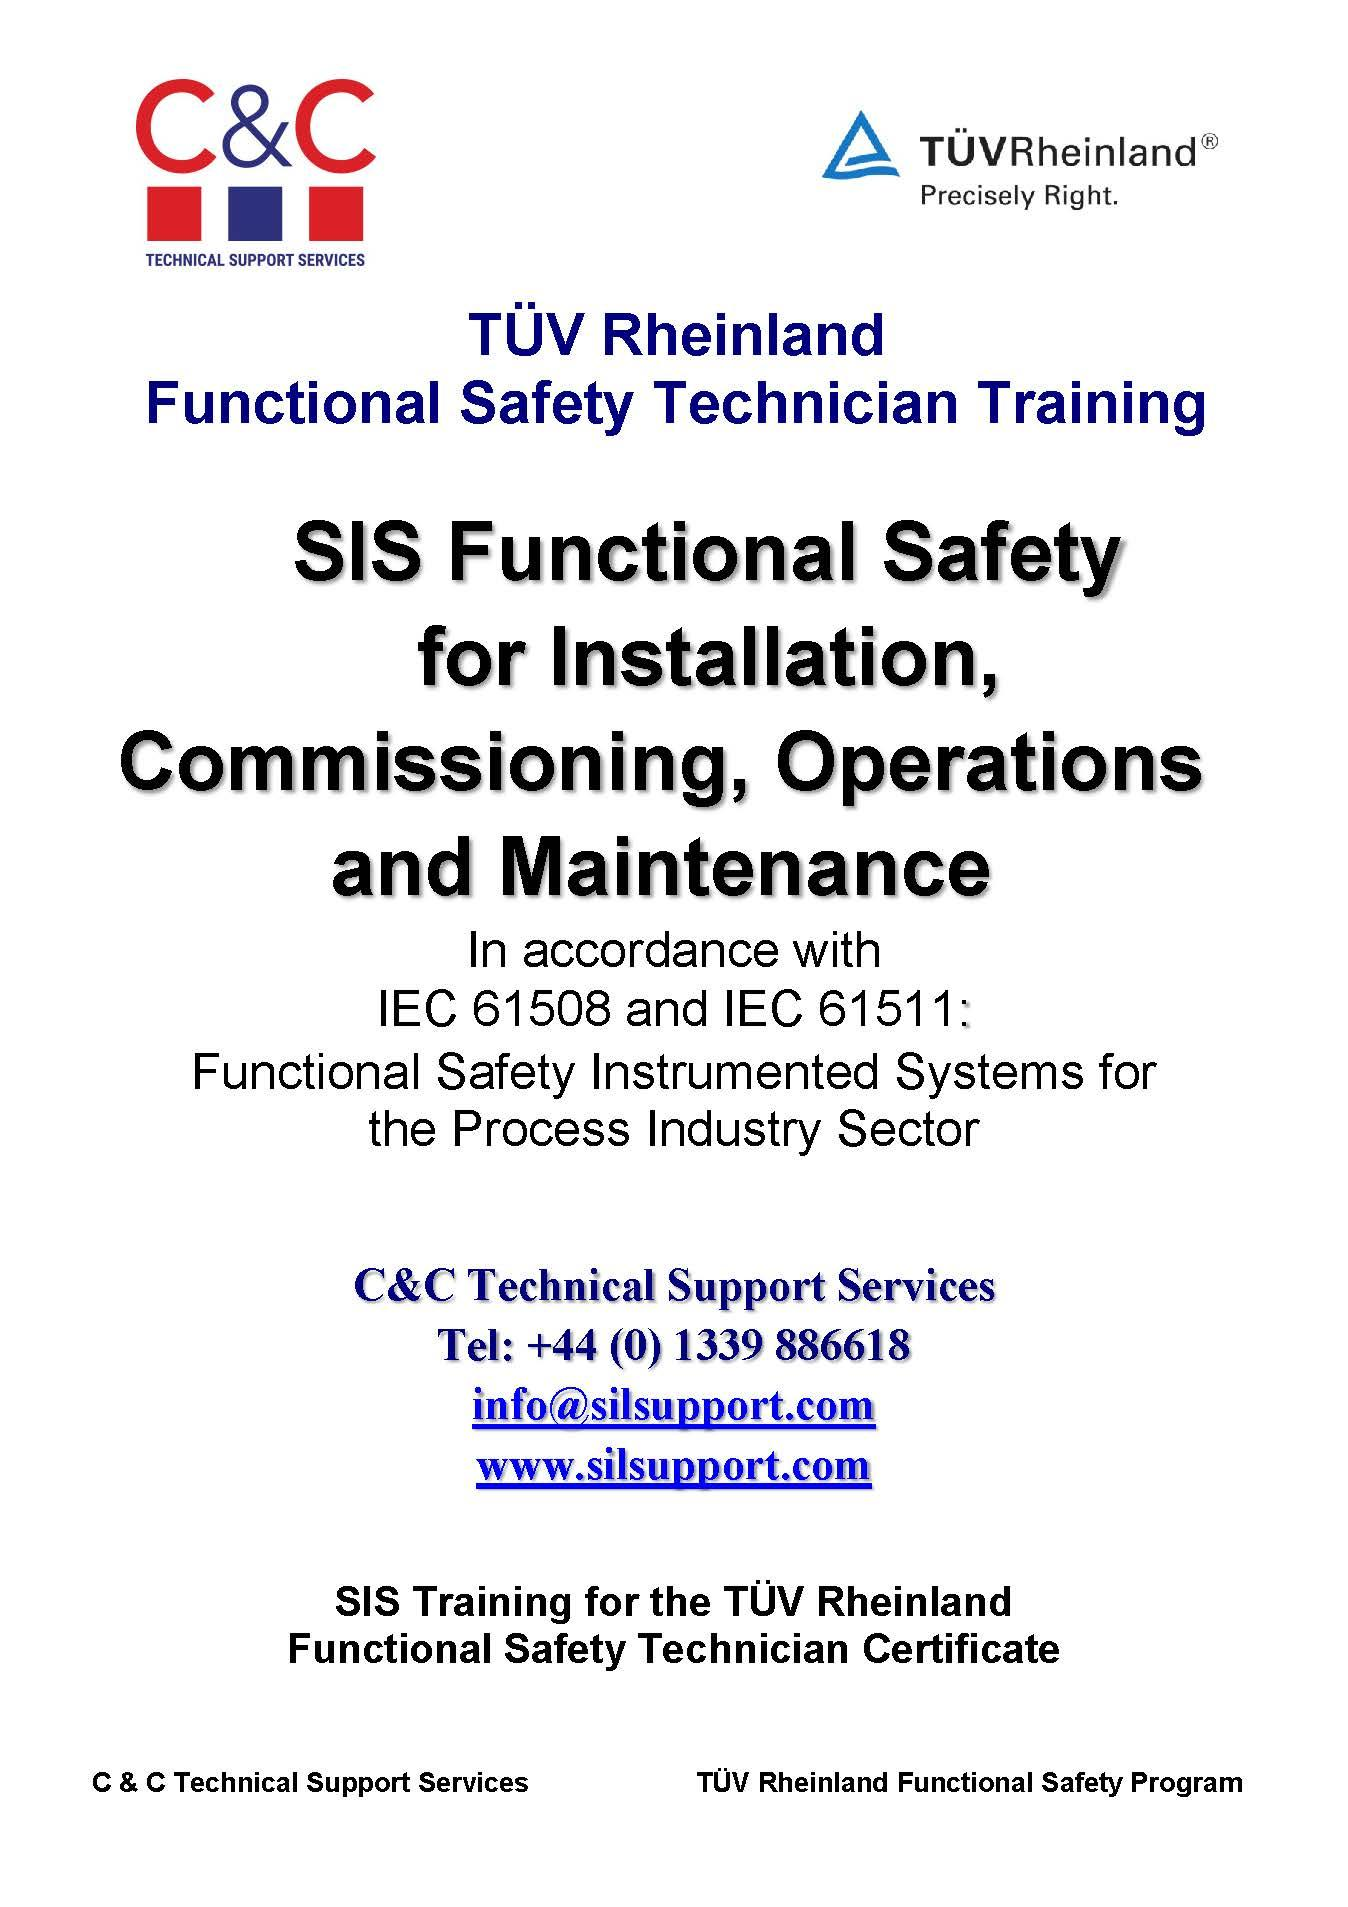 Functional Safety Technician Training